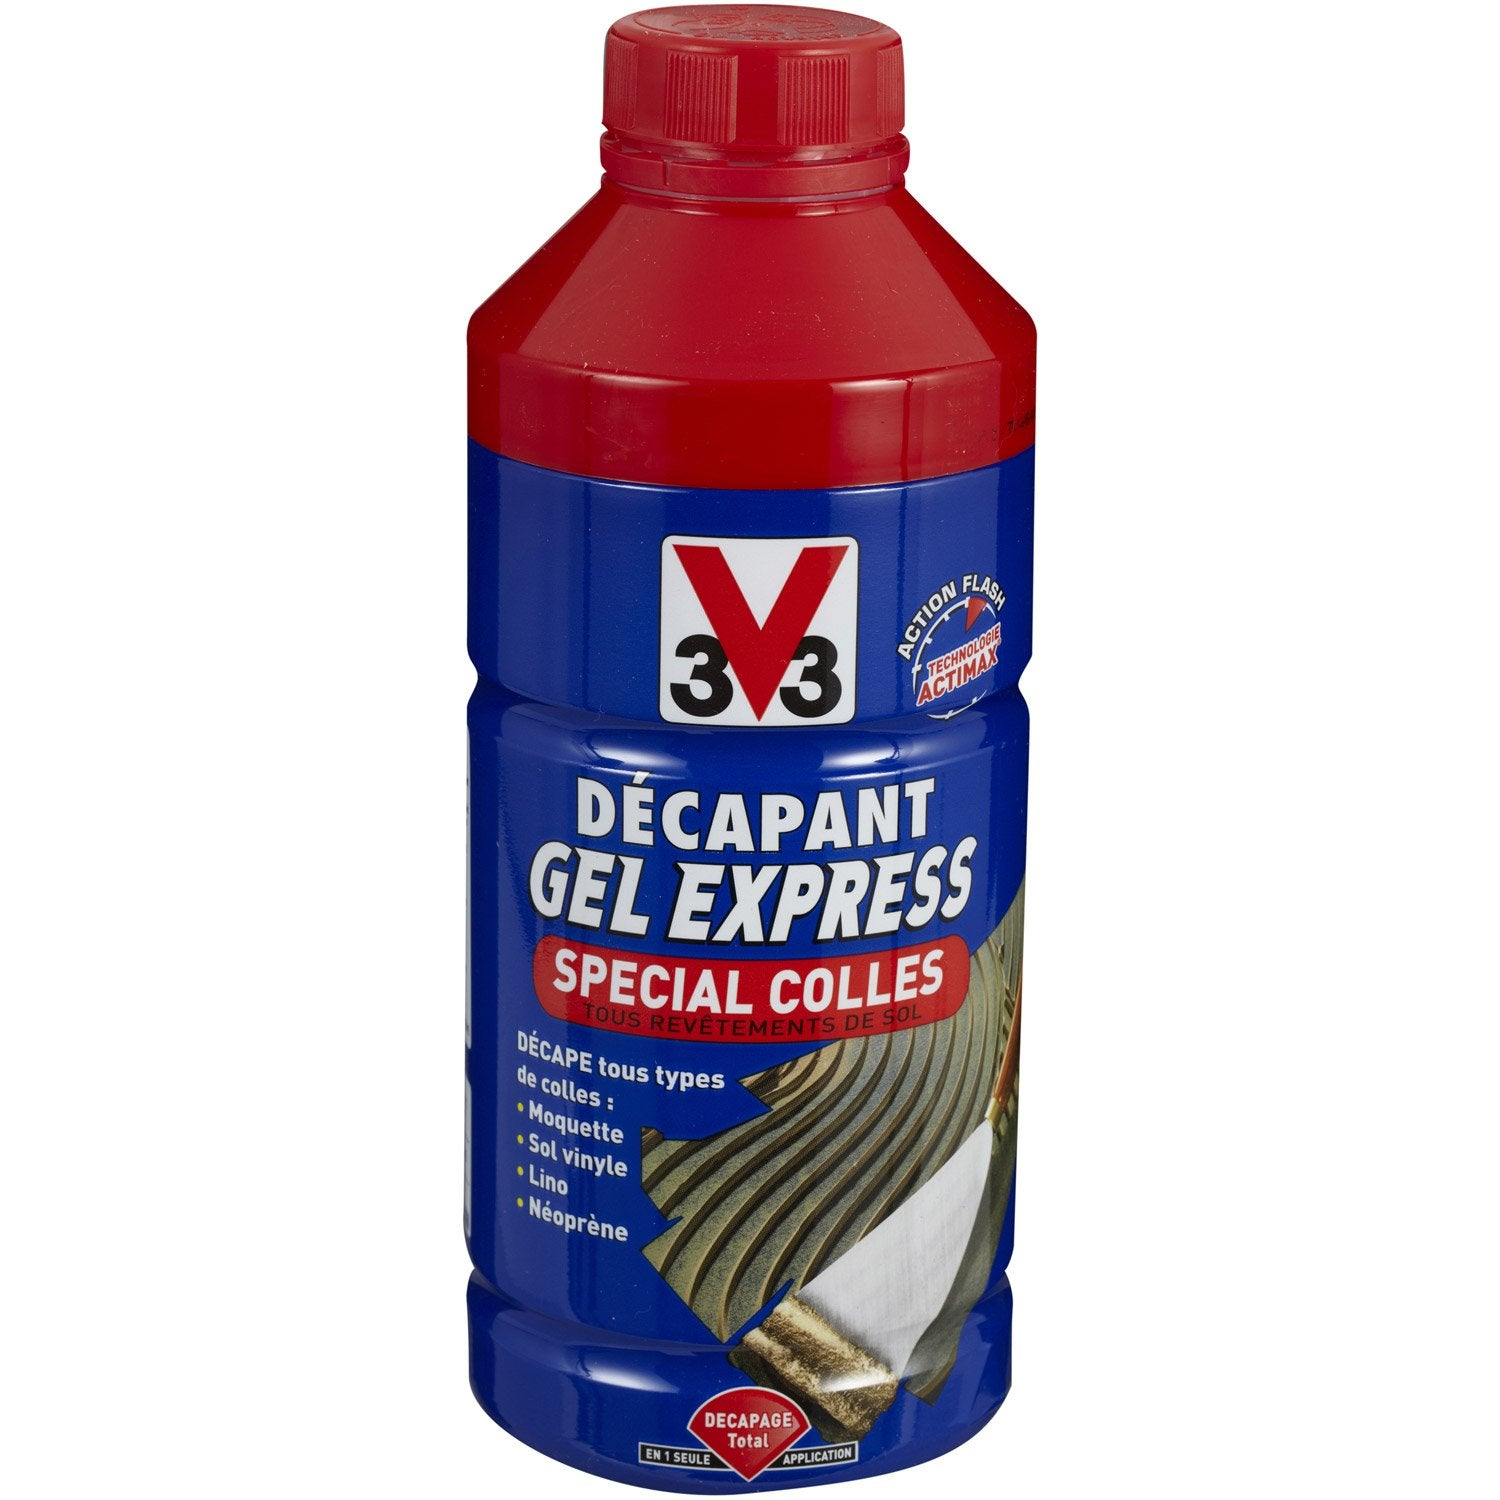 D capant colle v33 gel express 1 l leroy merlin for Grattoir carrelage